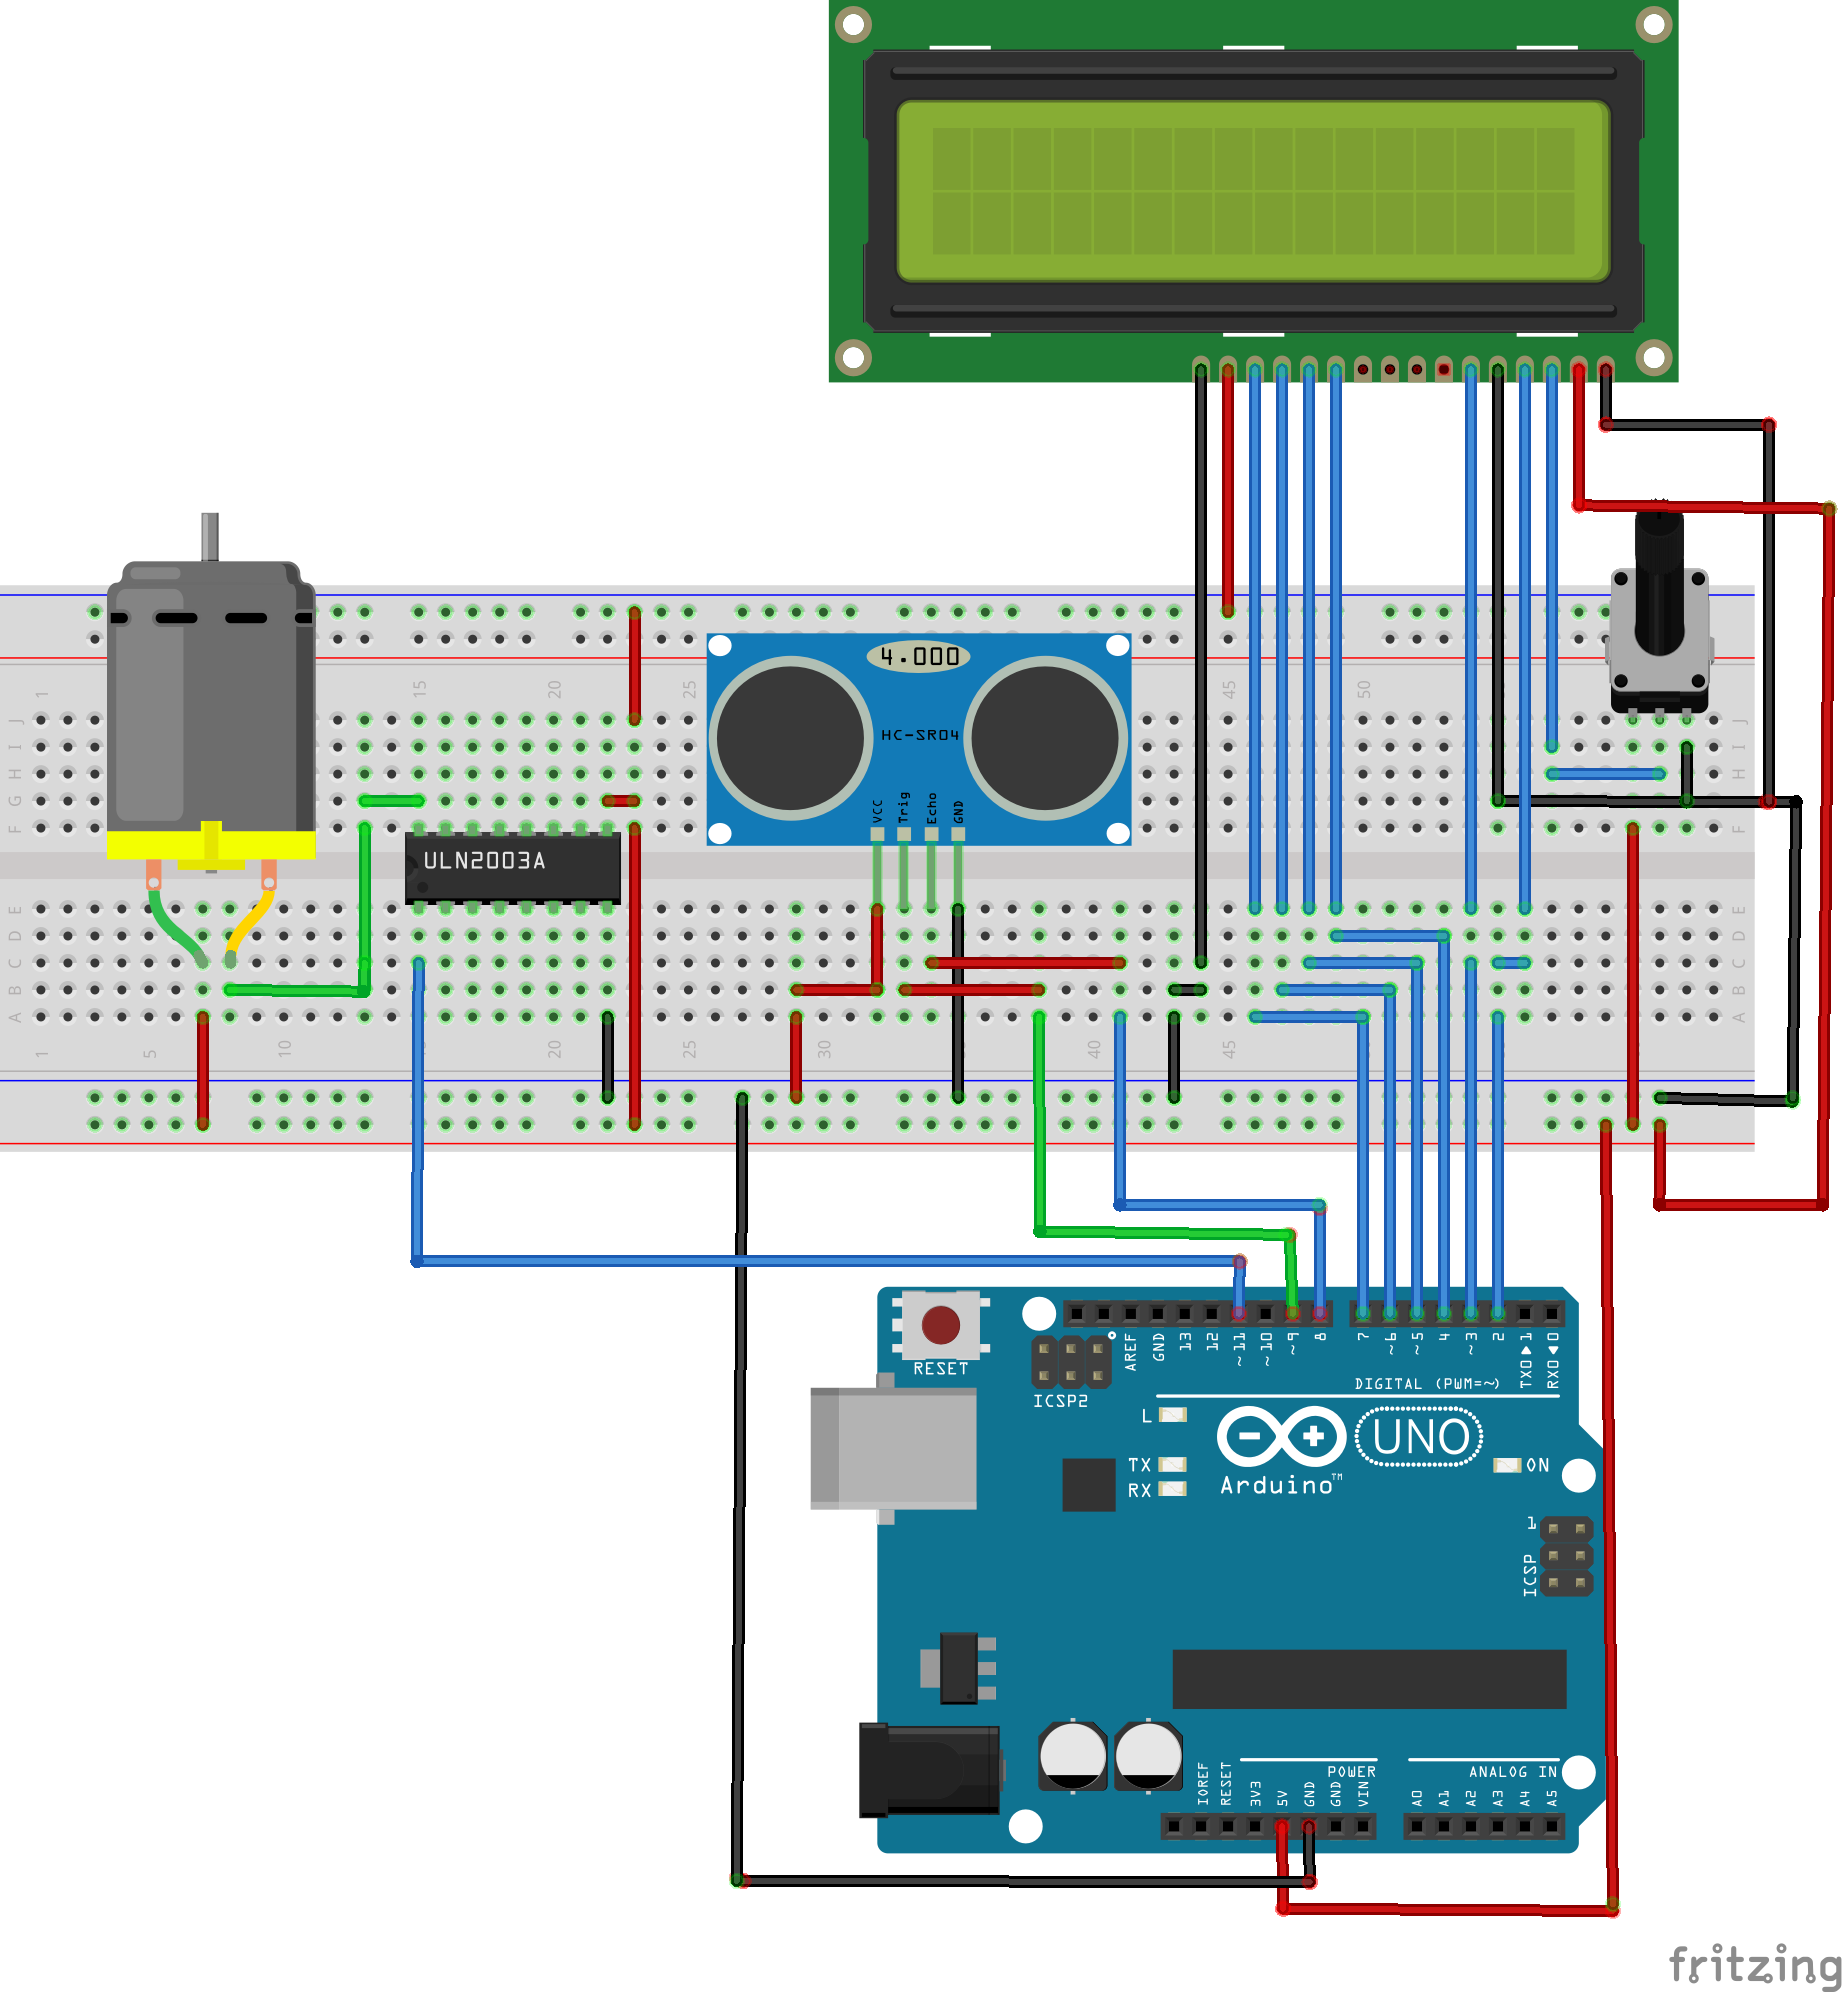 Experiences with arduino